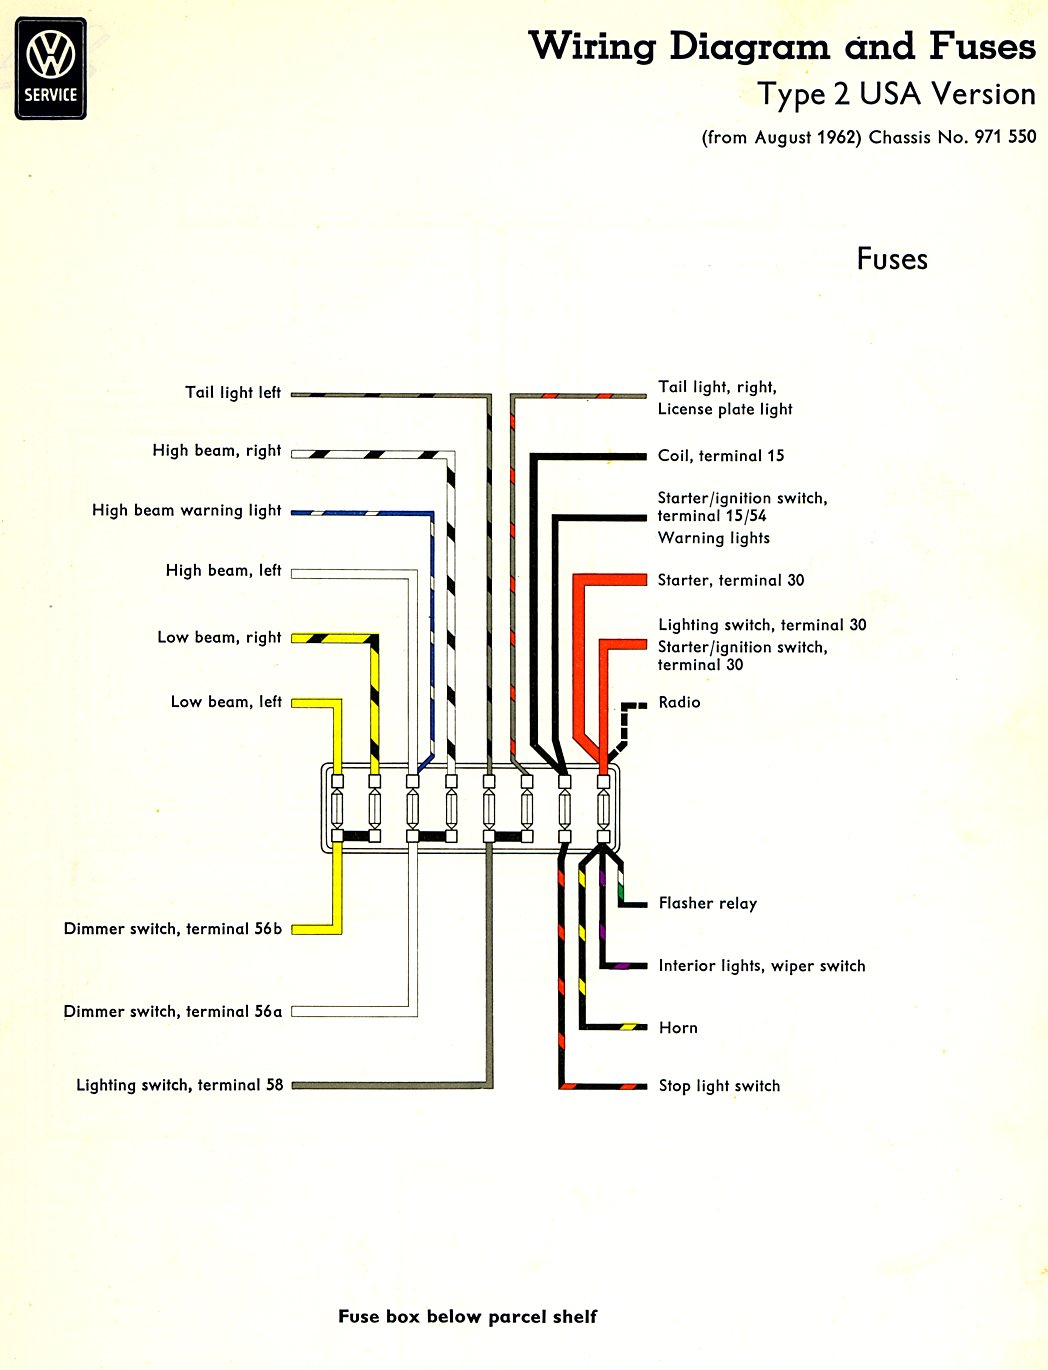 Type 2 Wiring Diagrams 1969 Vw Bug Fuse Box